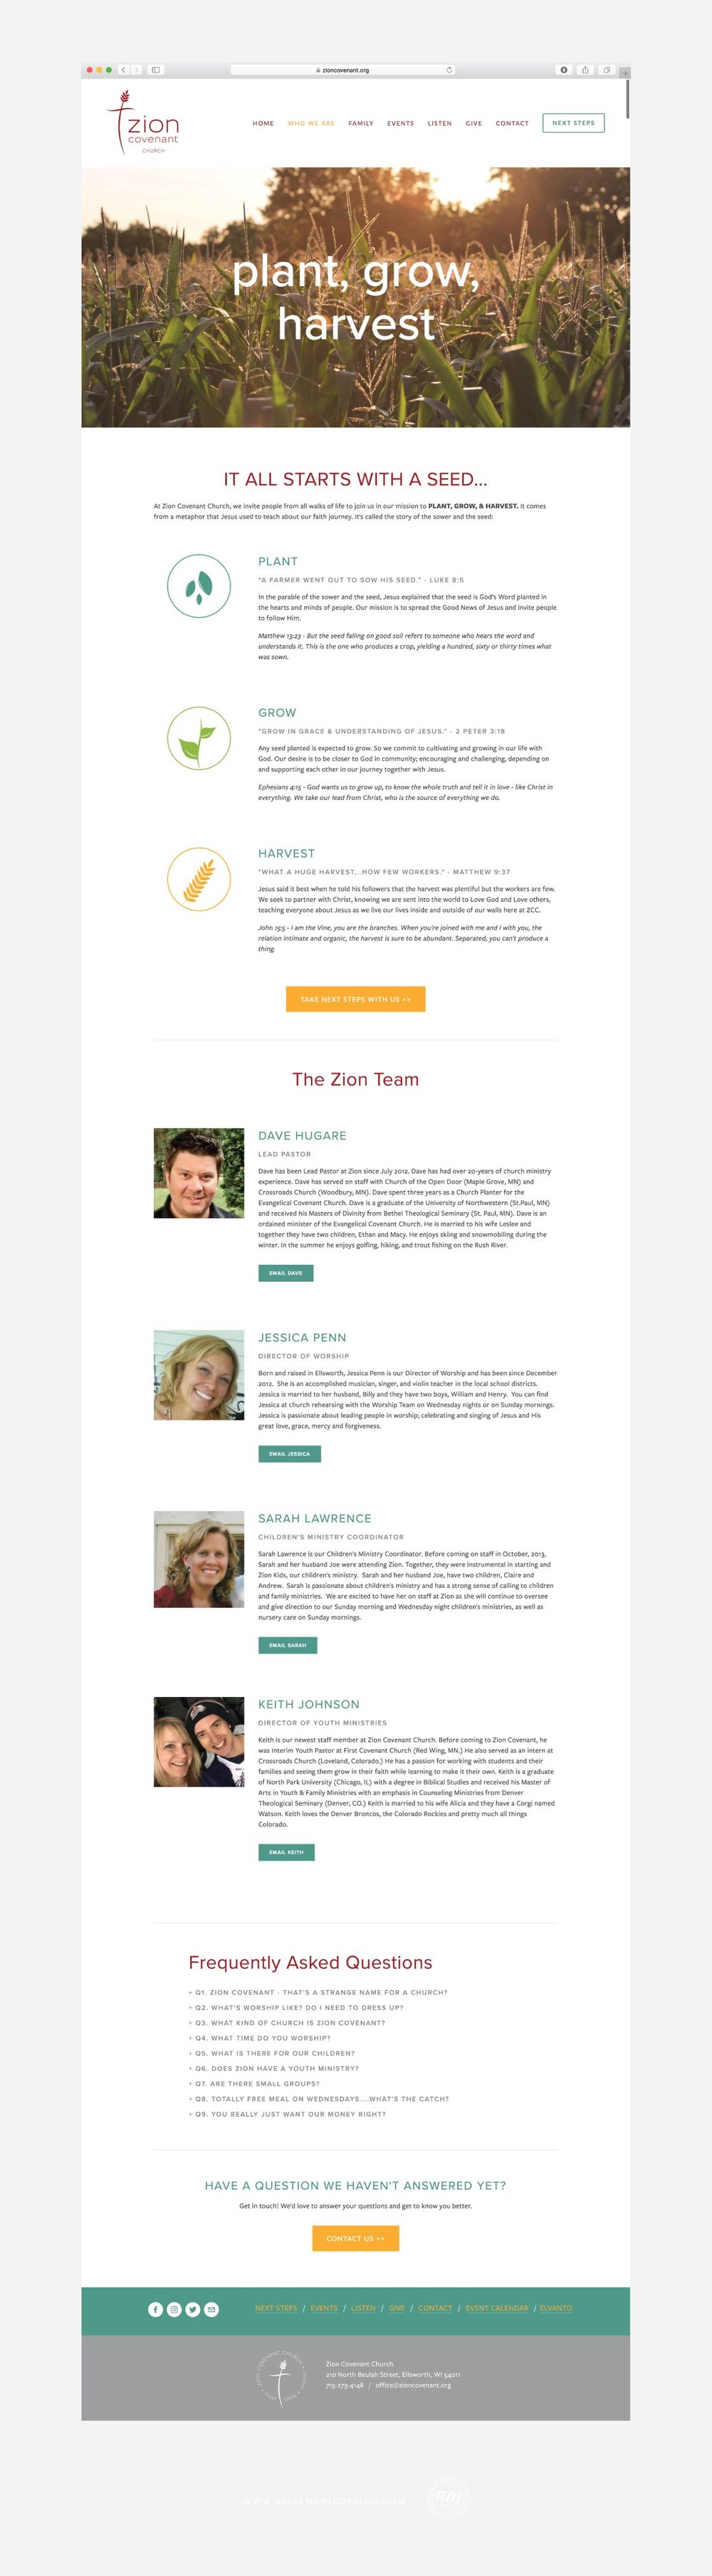 Zion Covenant Church Squarespace Website Design by AllieMarie Design